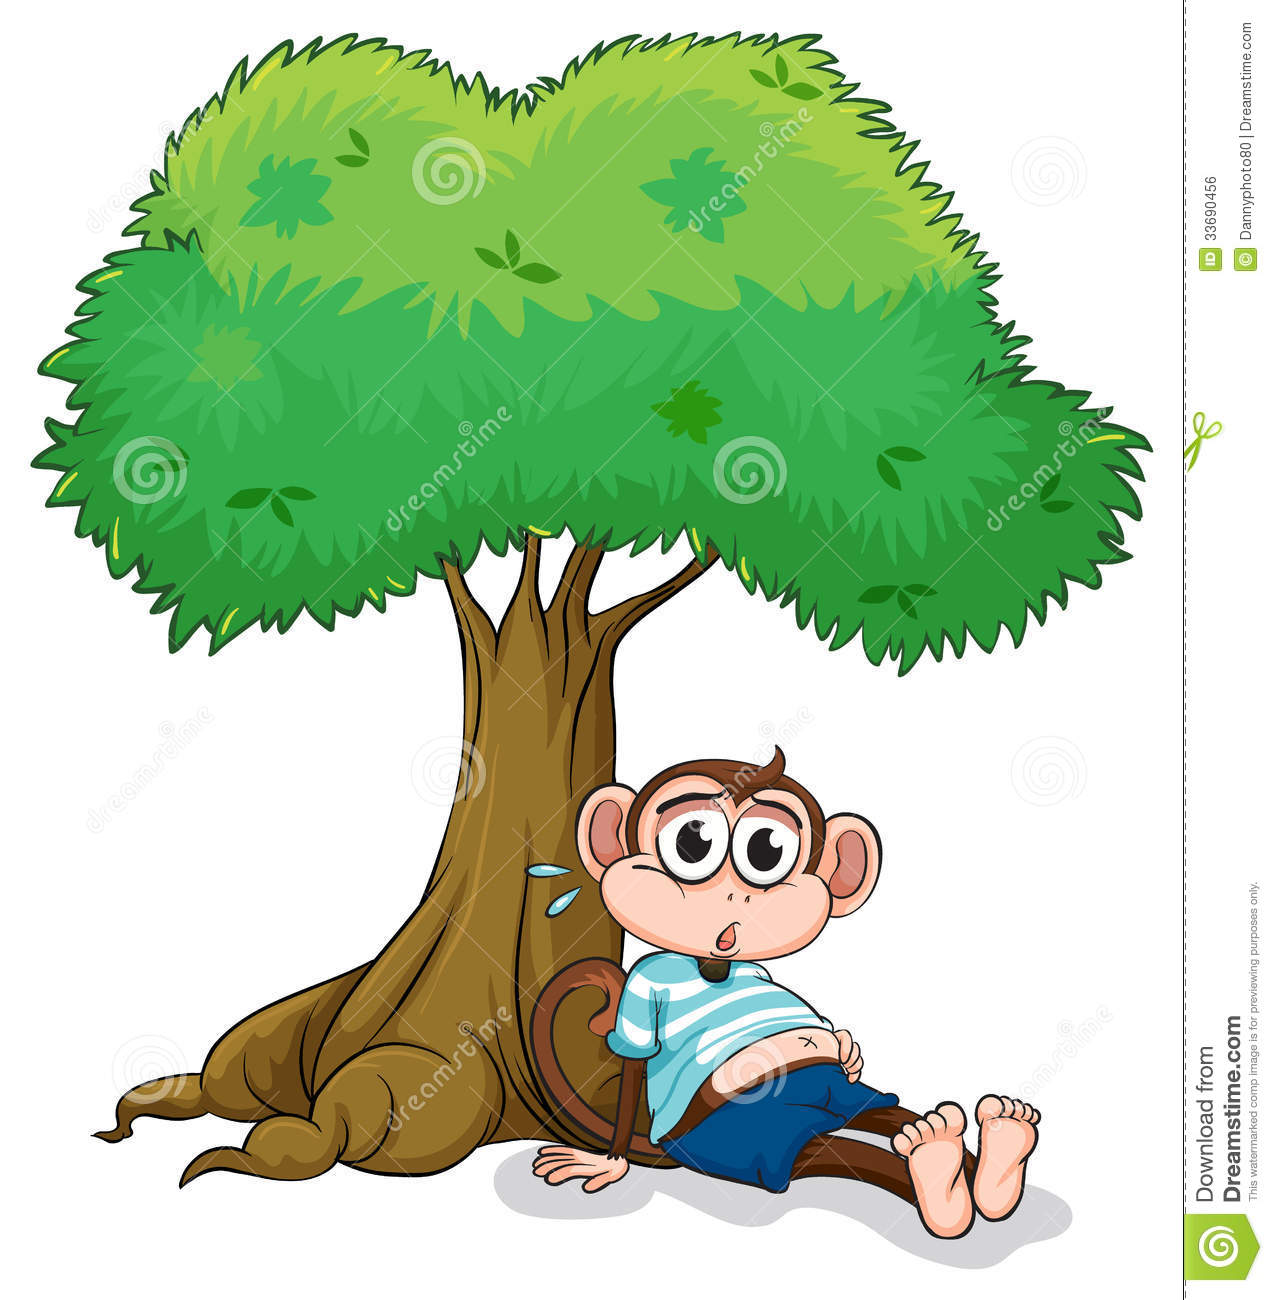 A Monkey Sitting Under A Tree Royalty Free Stock Image.